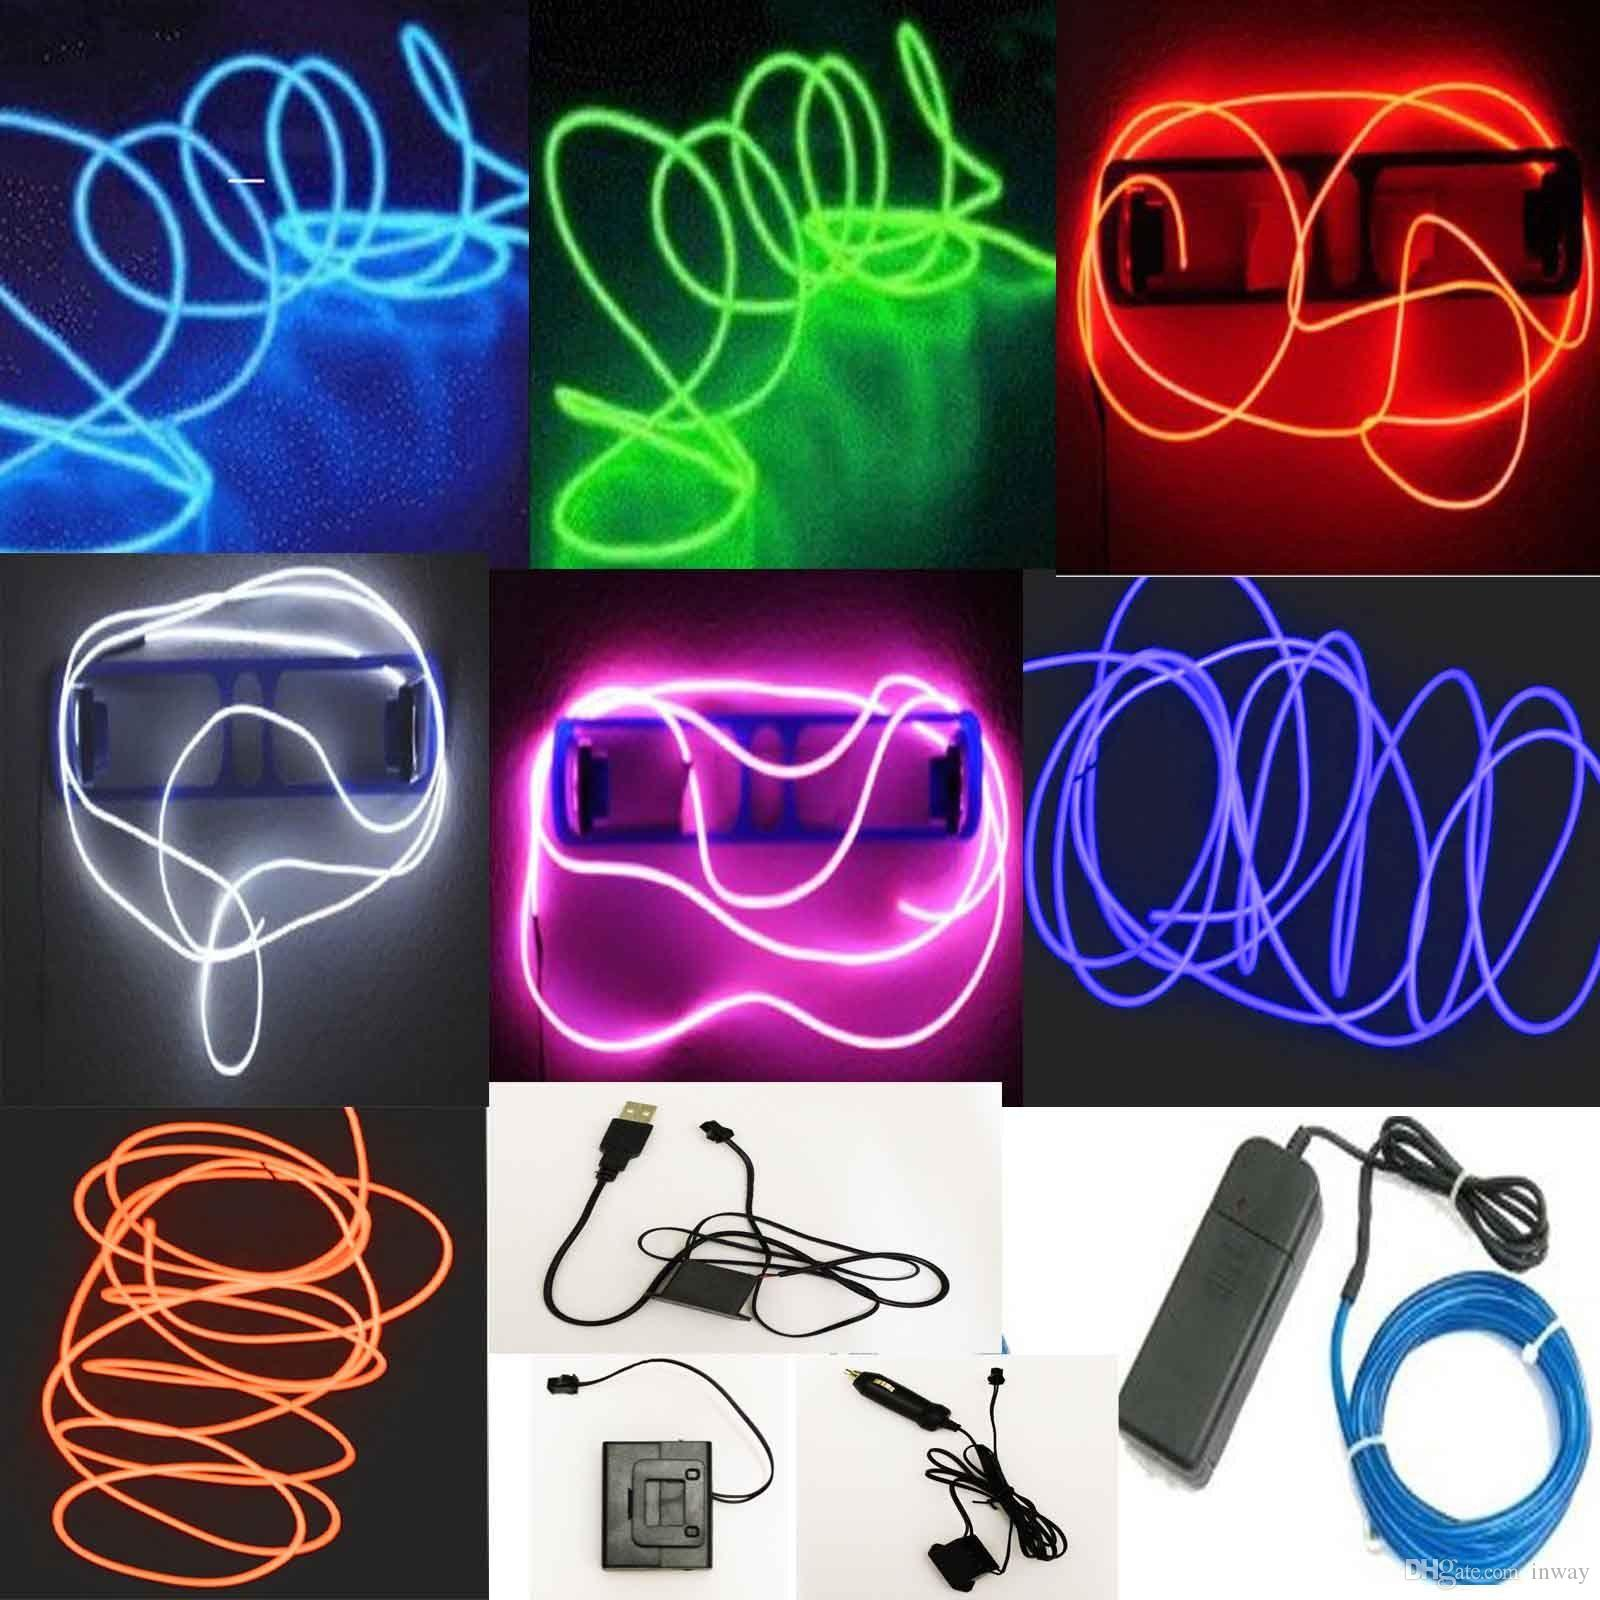 5m flexible neon led light glow el wire string strip rope tube car dance party controller. Black Bedroom Furniture Sets. Home Design Ideas